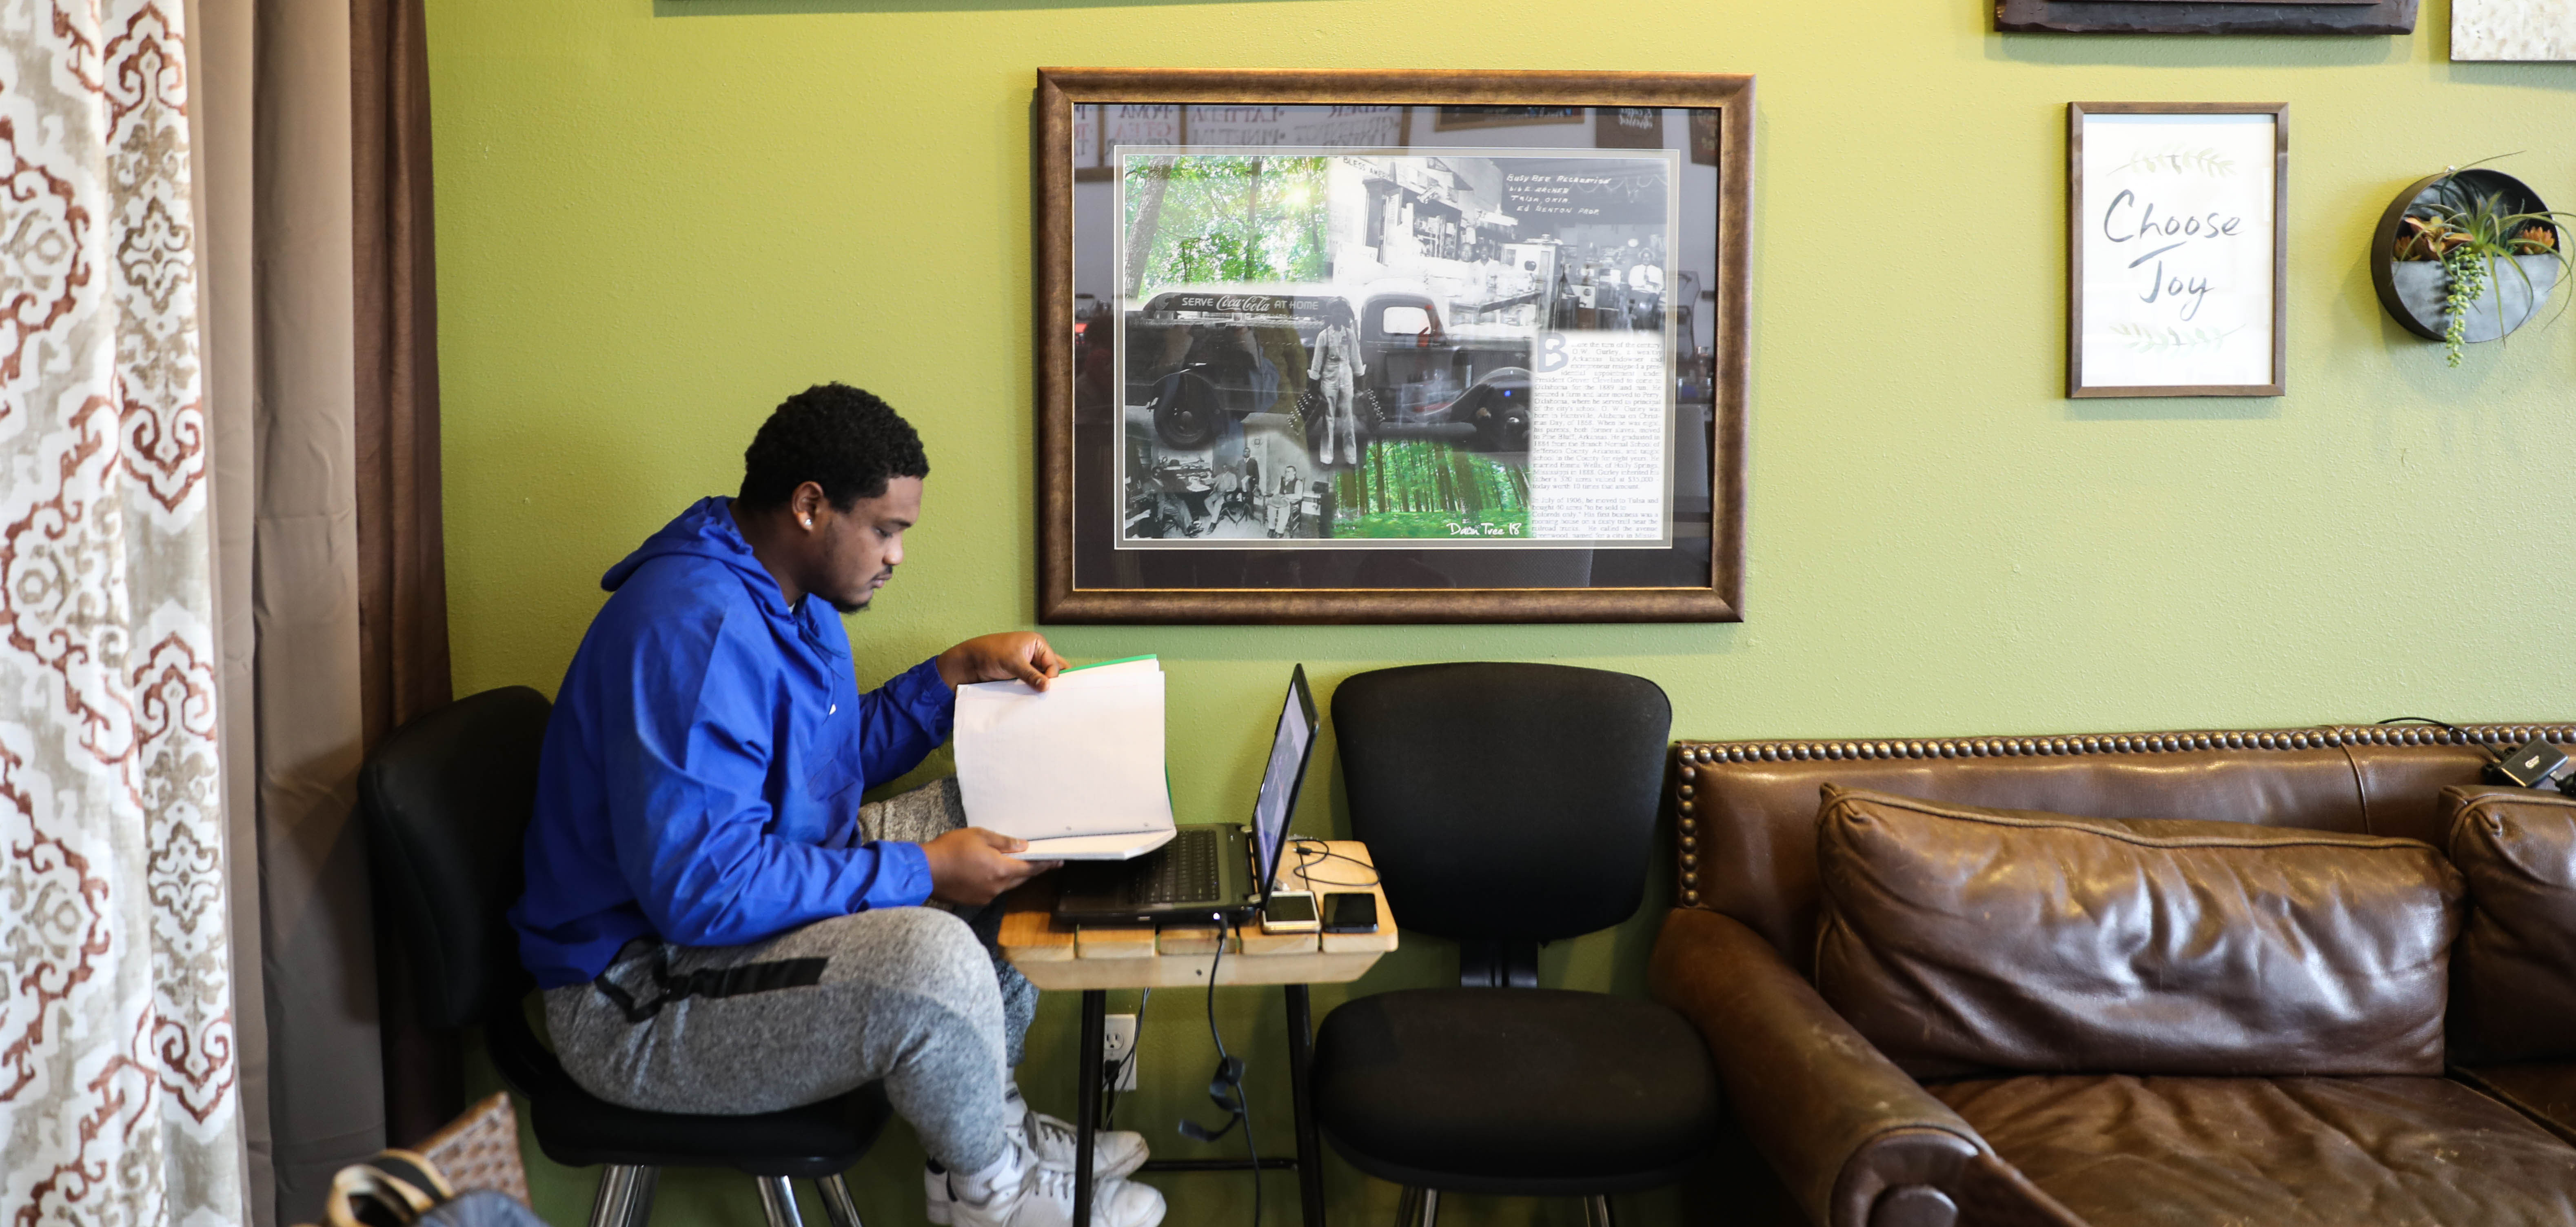 A man looks through paperwork with his laptop out and phone charging inside Black Wall Street Liquid Lounge, a vibrant coffee shop located in the Greenwood District in downtown Tulsa, Oklahoma.